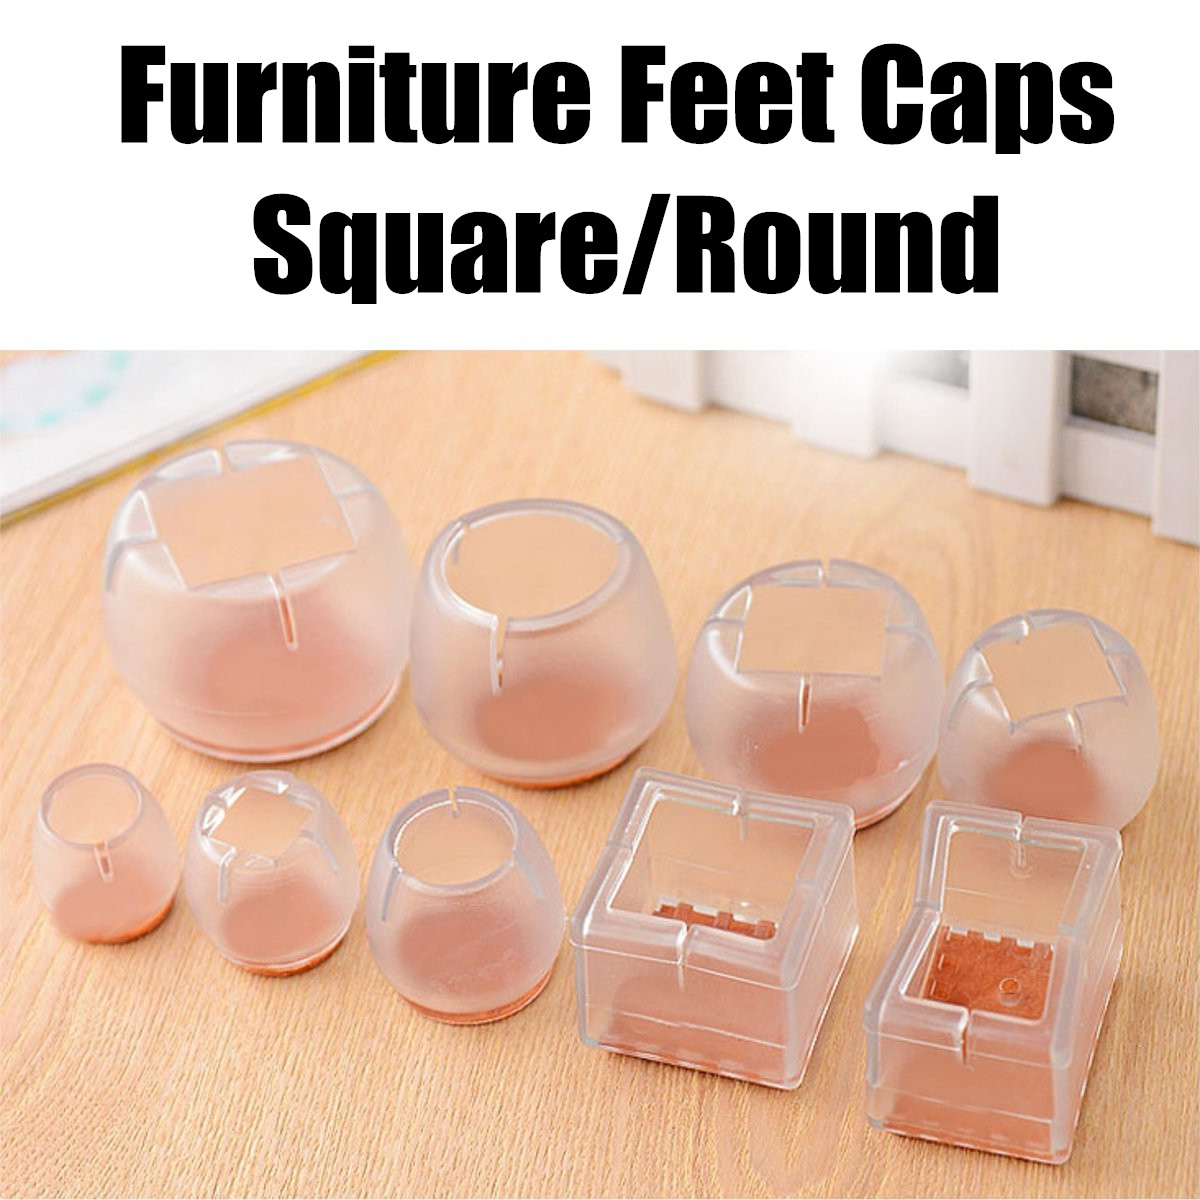 Silicone Square Round Furniture Feet Caps Table Chair Leg Pads Floor Protector Scratchproof